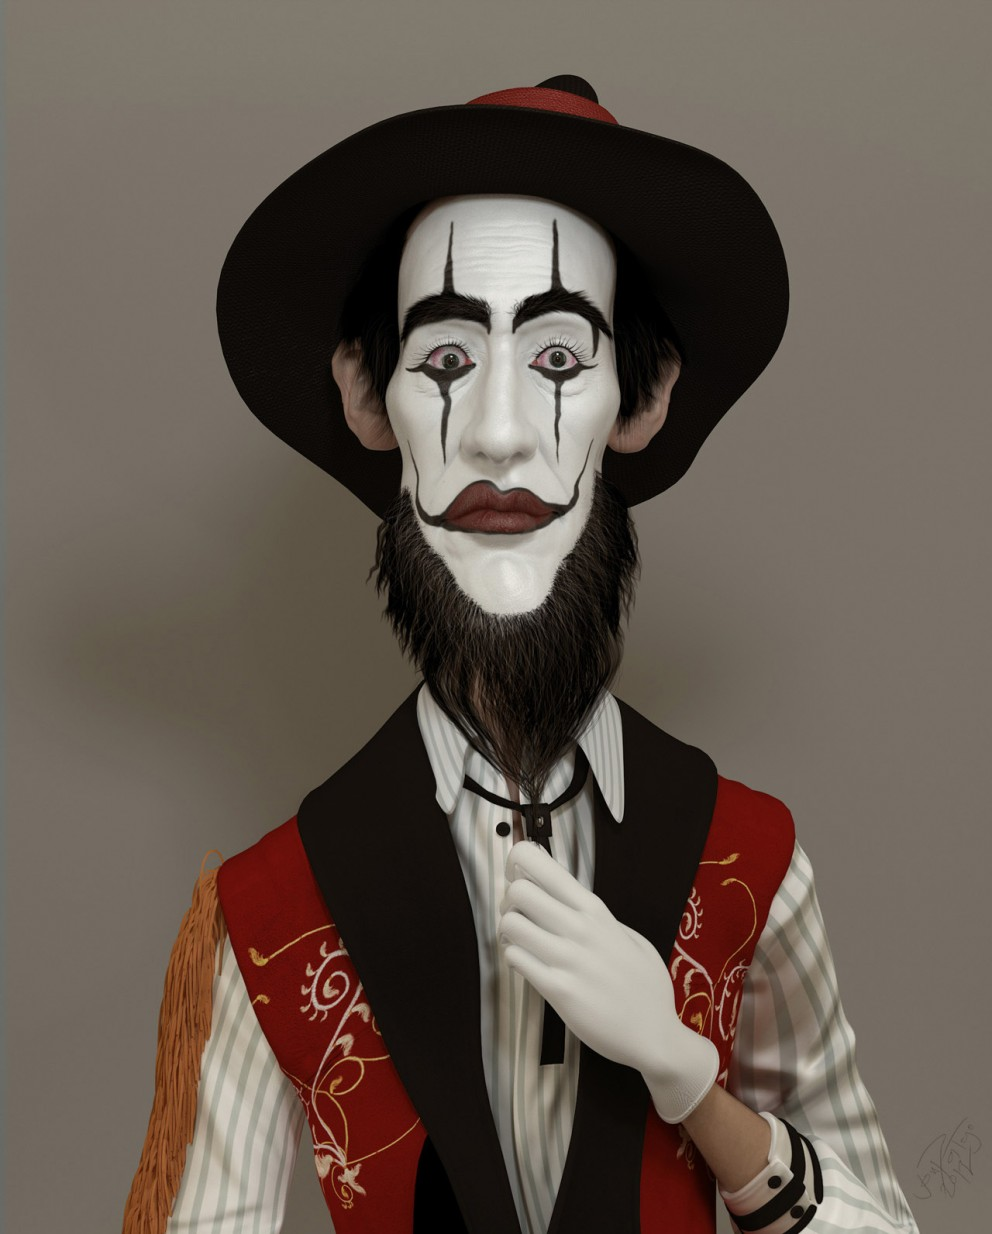 3D Art: Mime Guy